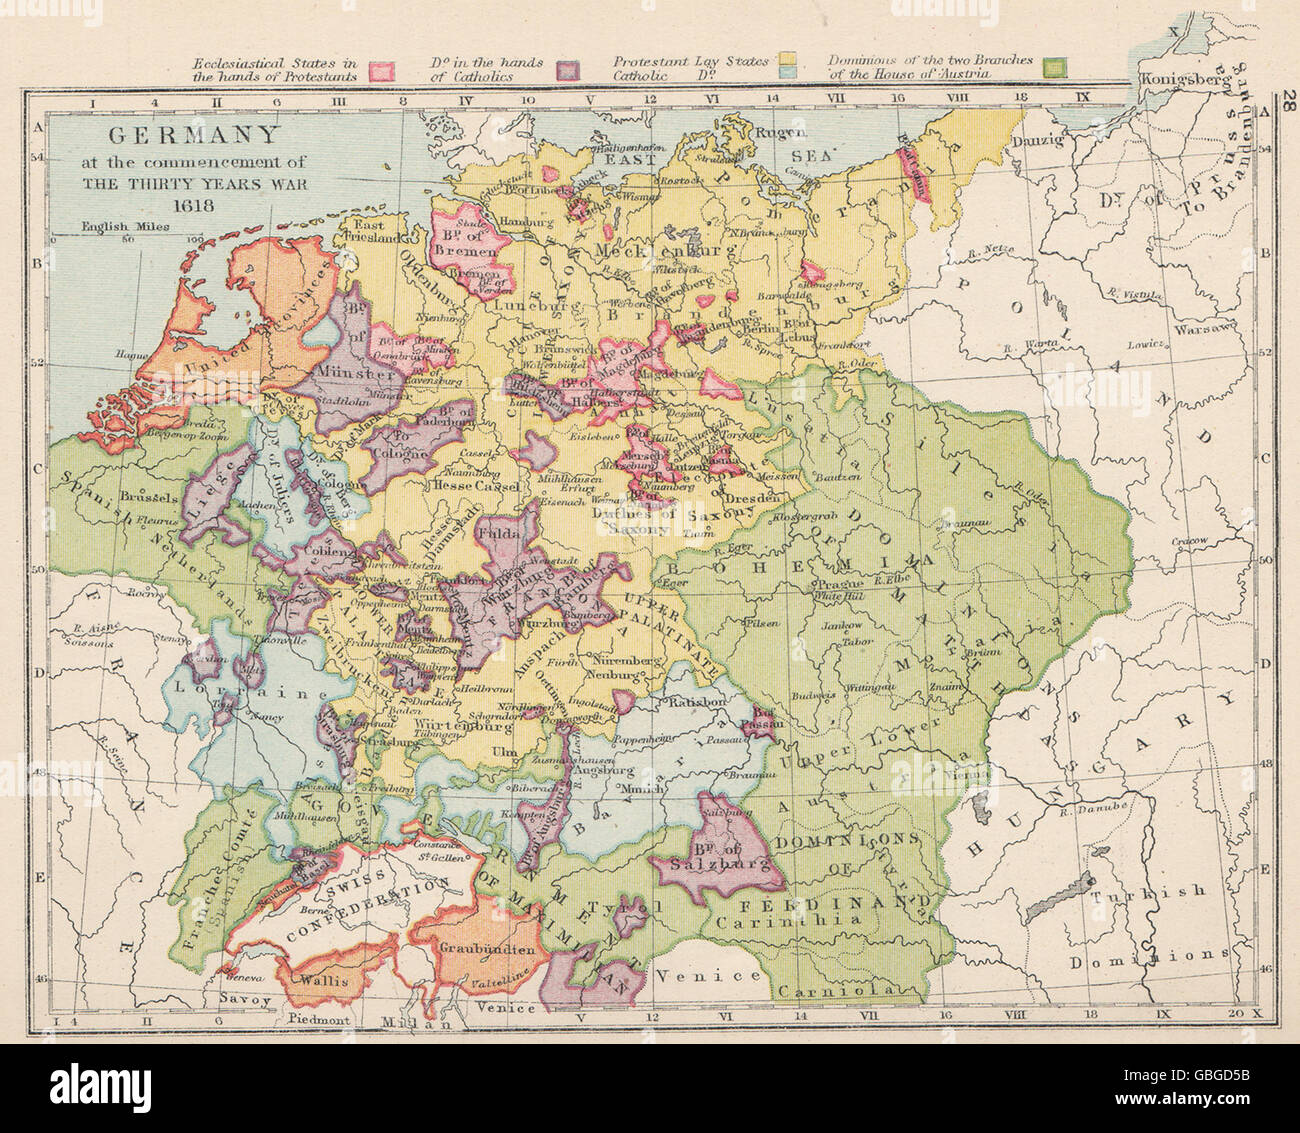 Map Of Germany 30 Years War.Germany 1618 30 Years War Protestant Catholic States